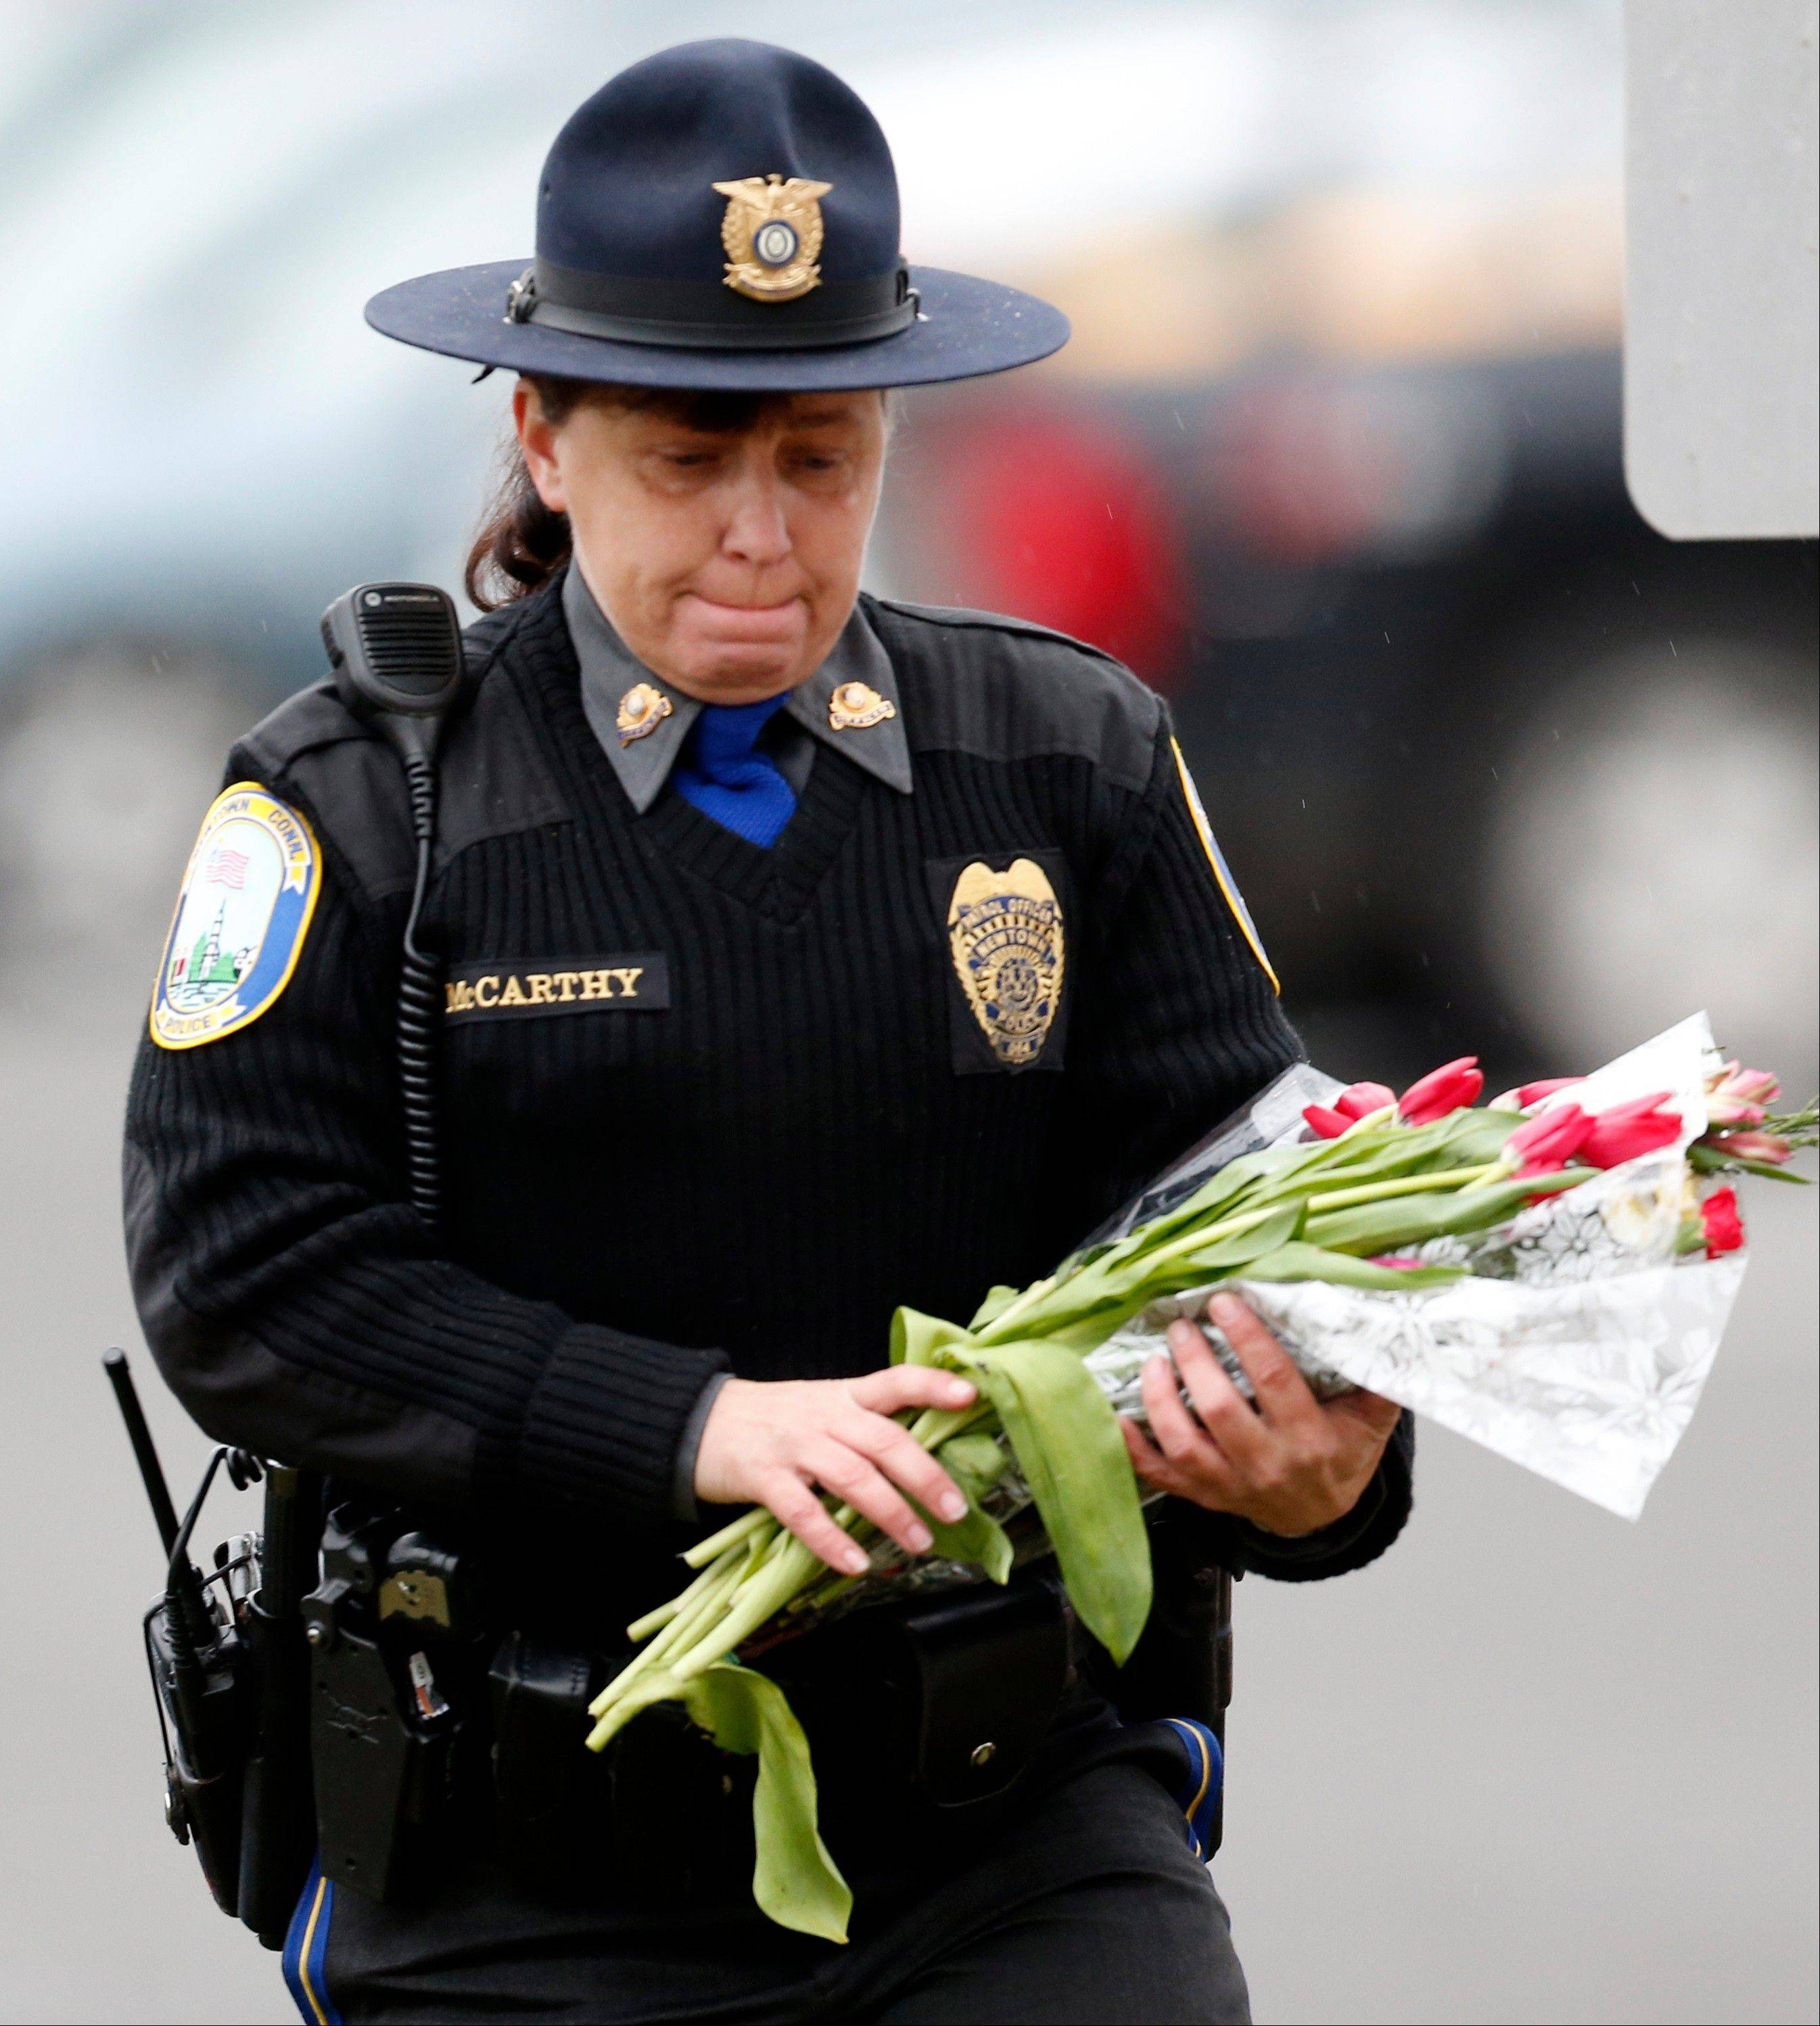 Newtown Police Officer Maryhelen McCarthy places flowers at a makeshift memorial outside St. Rose of Lima Roman Catholic Church, Sunday, Dec. 16, 2012, in Newtown, Conn. On Friday, a gunman allegedly killed his mother at their home and then opened fire inside the Sandy Hook Elementary School, killing 26 people, including 20 children.